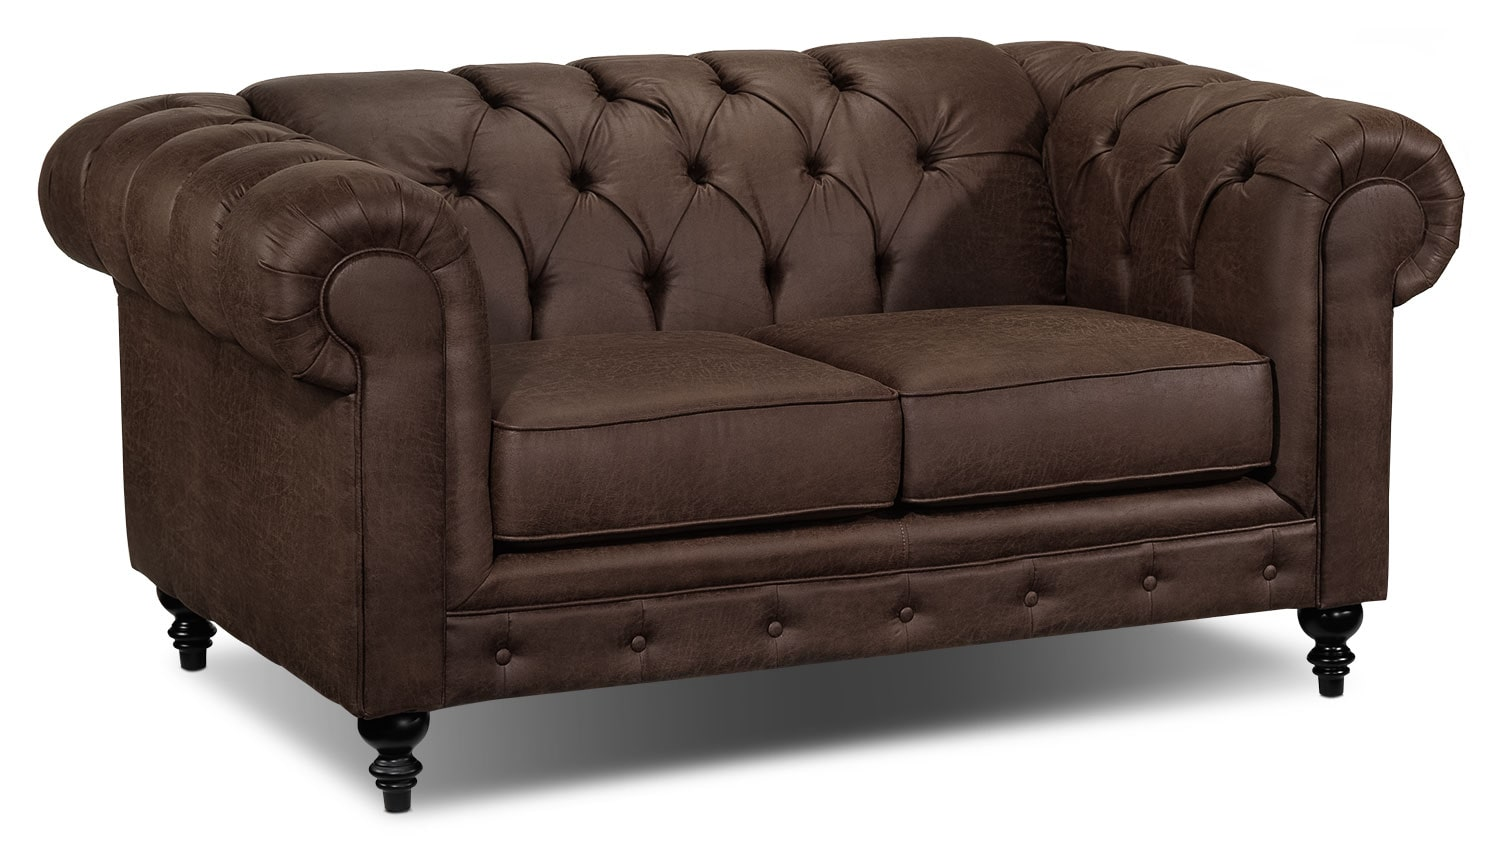 Living Room Furniture - Chapman Loveseat - Brown